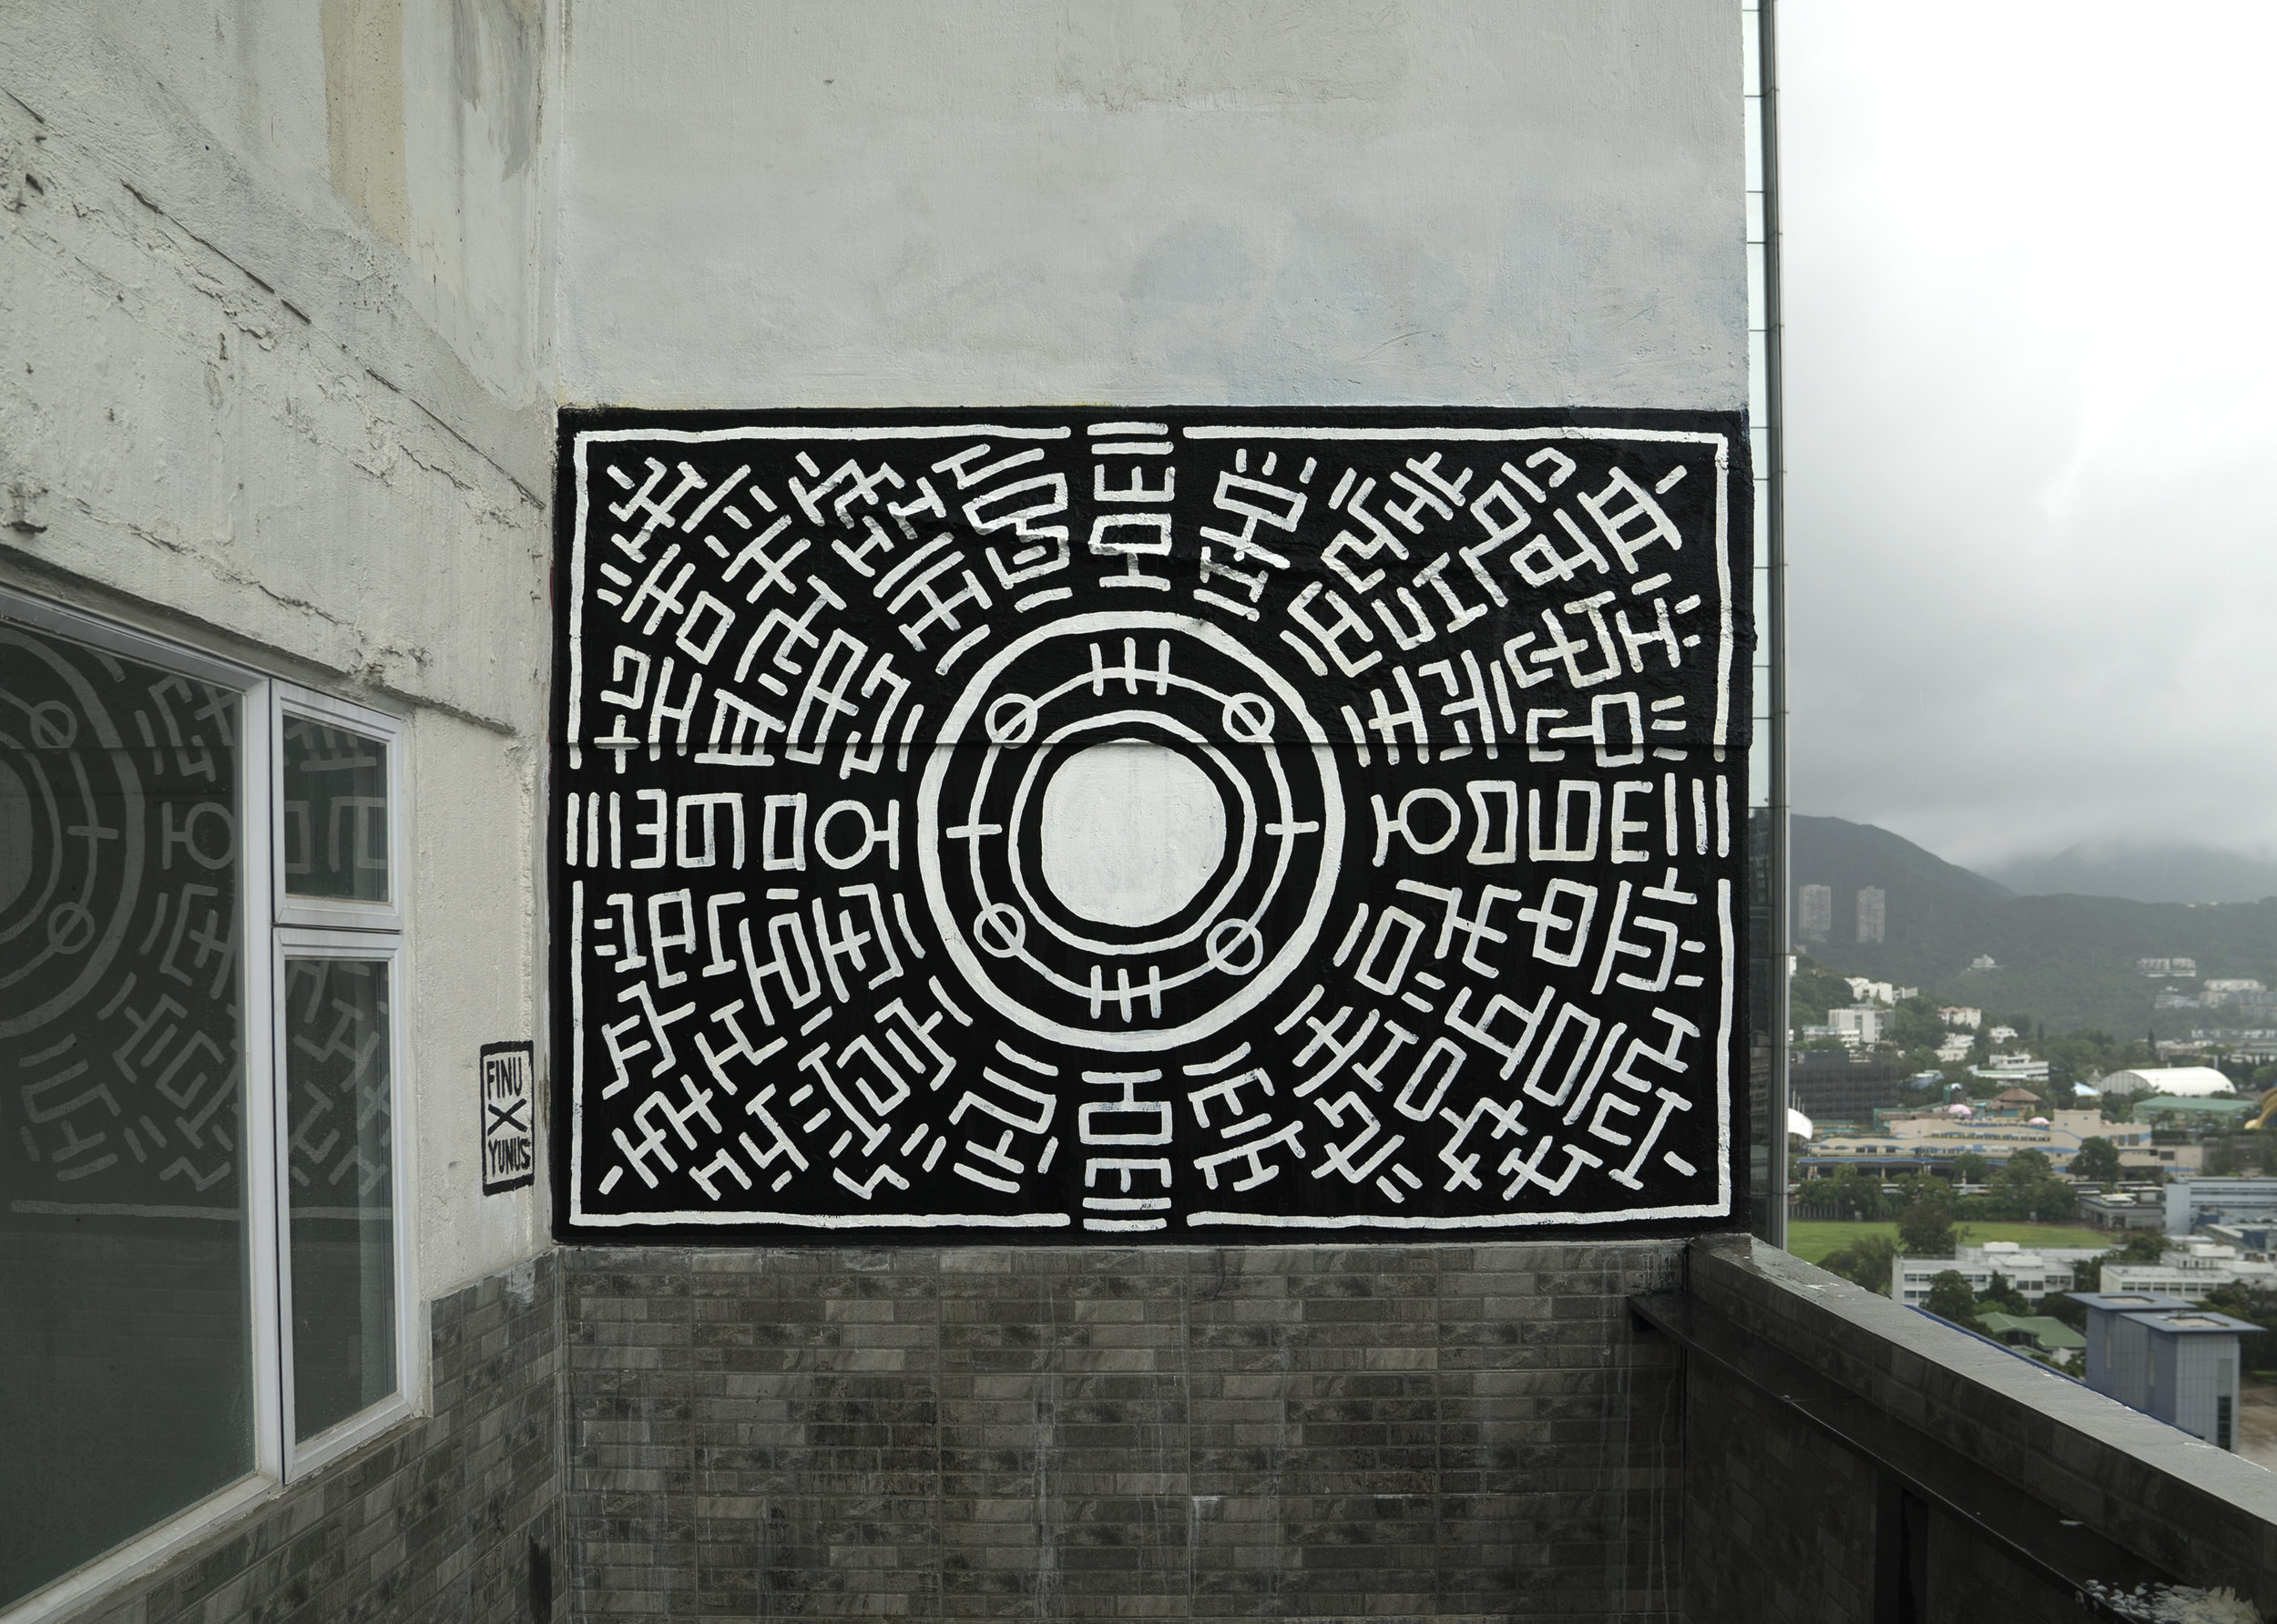 Portal - Electronic Museum 4  Paint on wall, Wong Chuk Hang, Hong Kong, 2018